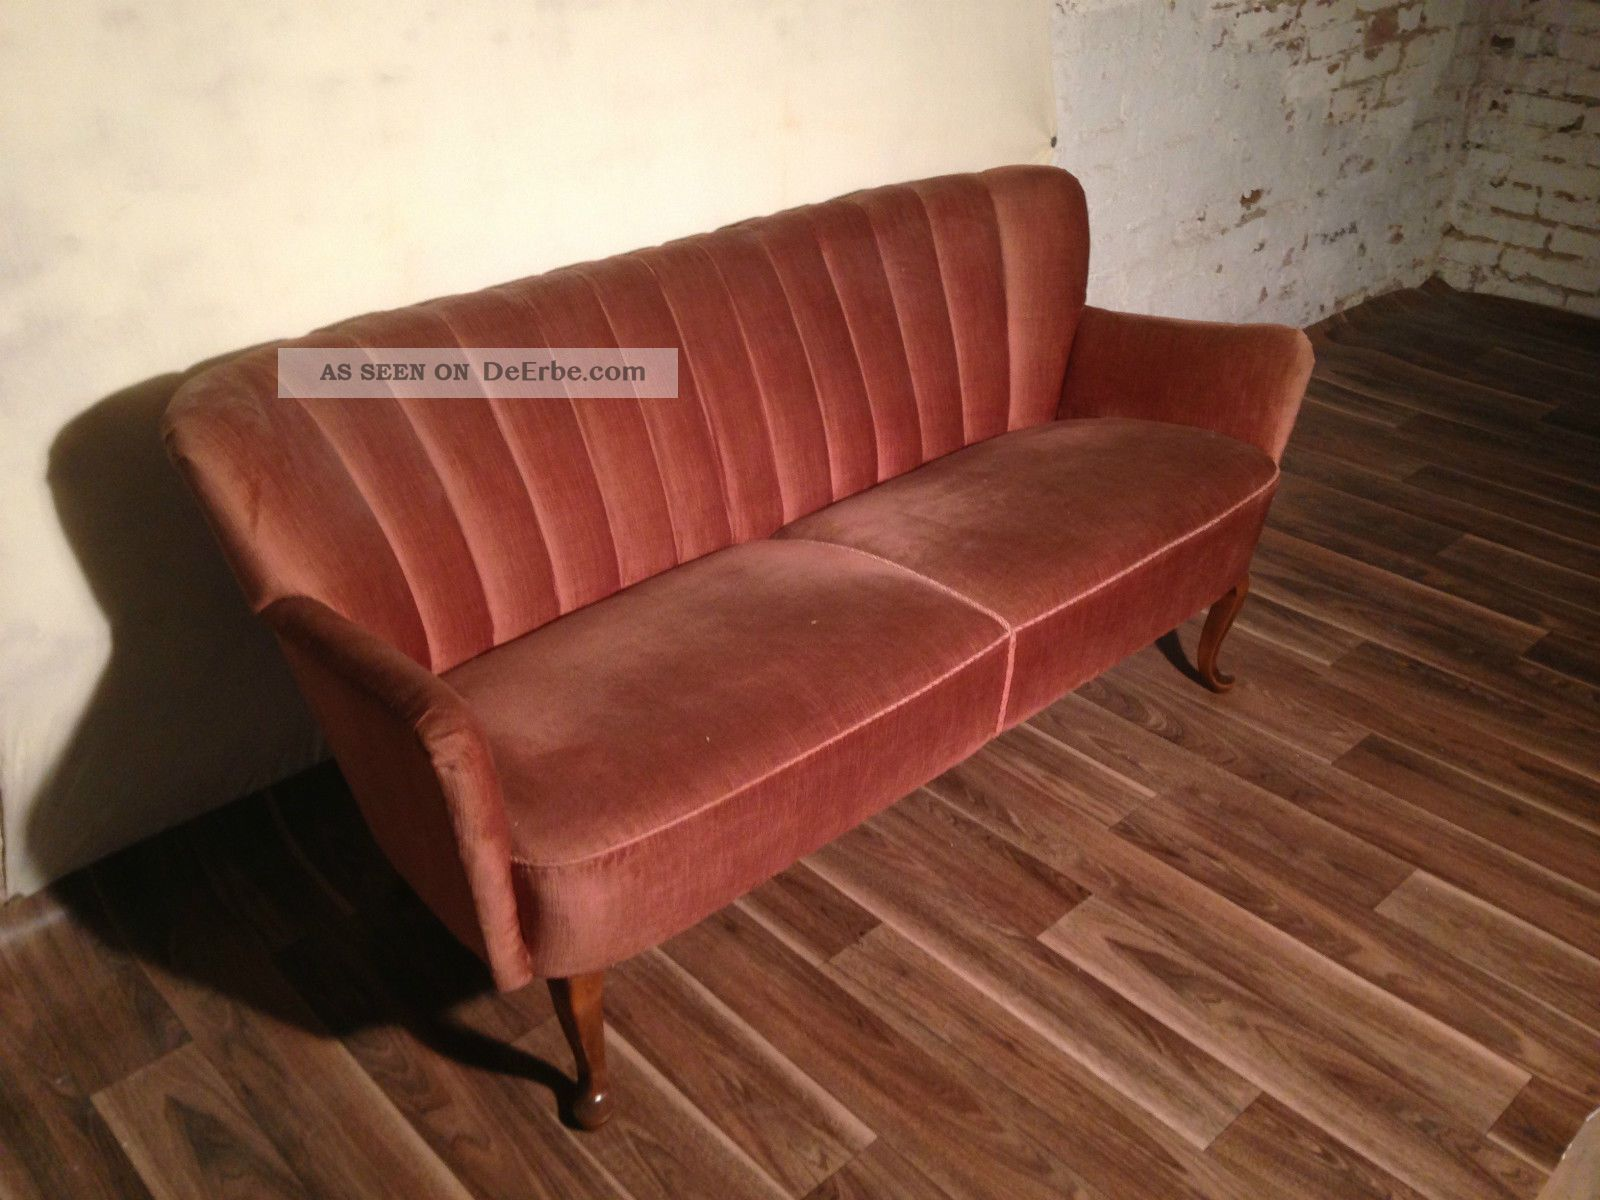 Full Size of Sofa Hannover Spannbezug Ligne Roset Türkische Home Affair Englisch Kare 2 5 Sitzer Canape Weiches Le Corbusier Karup Husse Türkis Togo Boxspring Mit Sofa Sofa Hannover